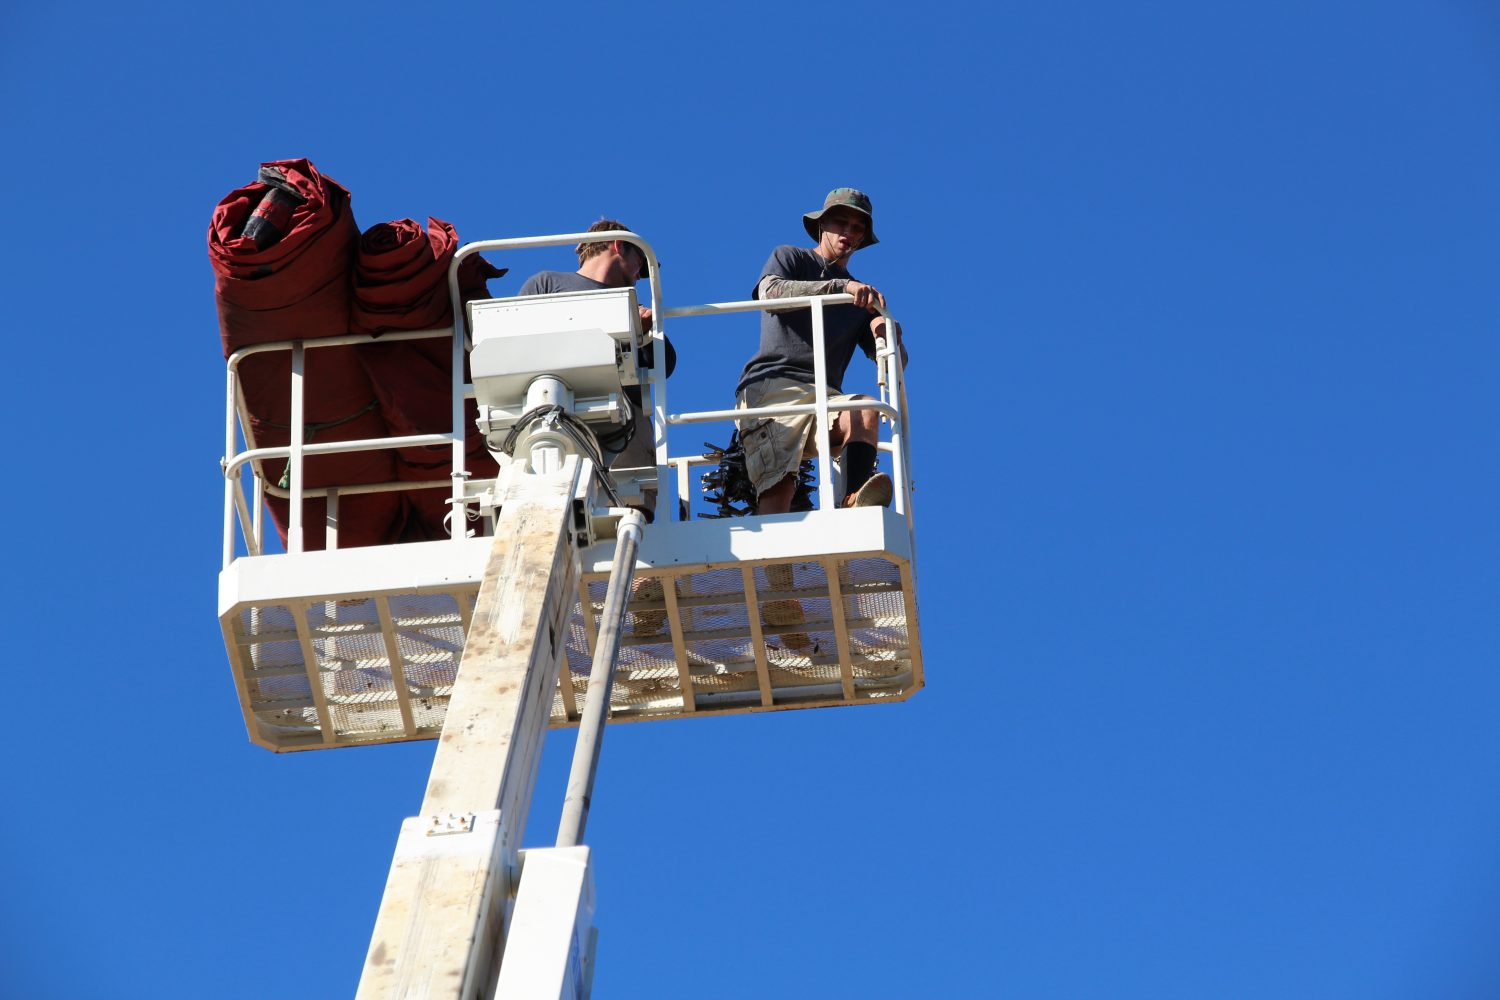 Workers take the tarps 50 feet high to place them on the rooftops of the Thomas Center.